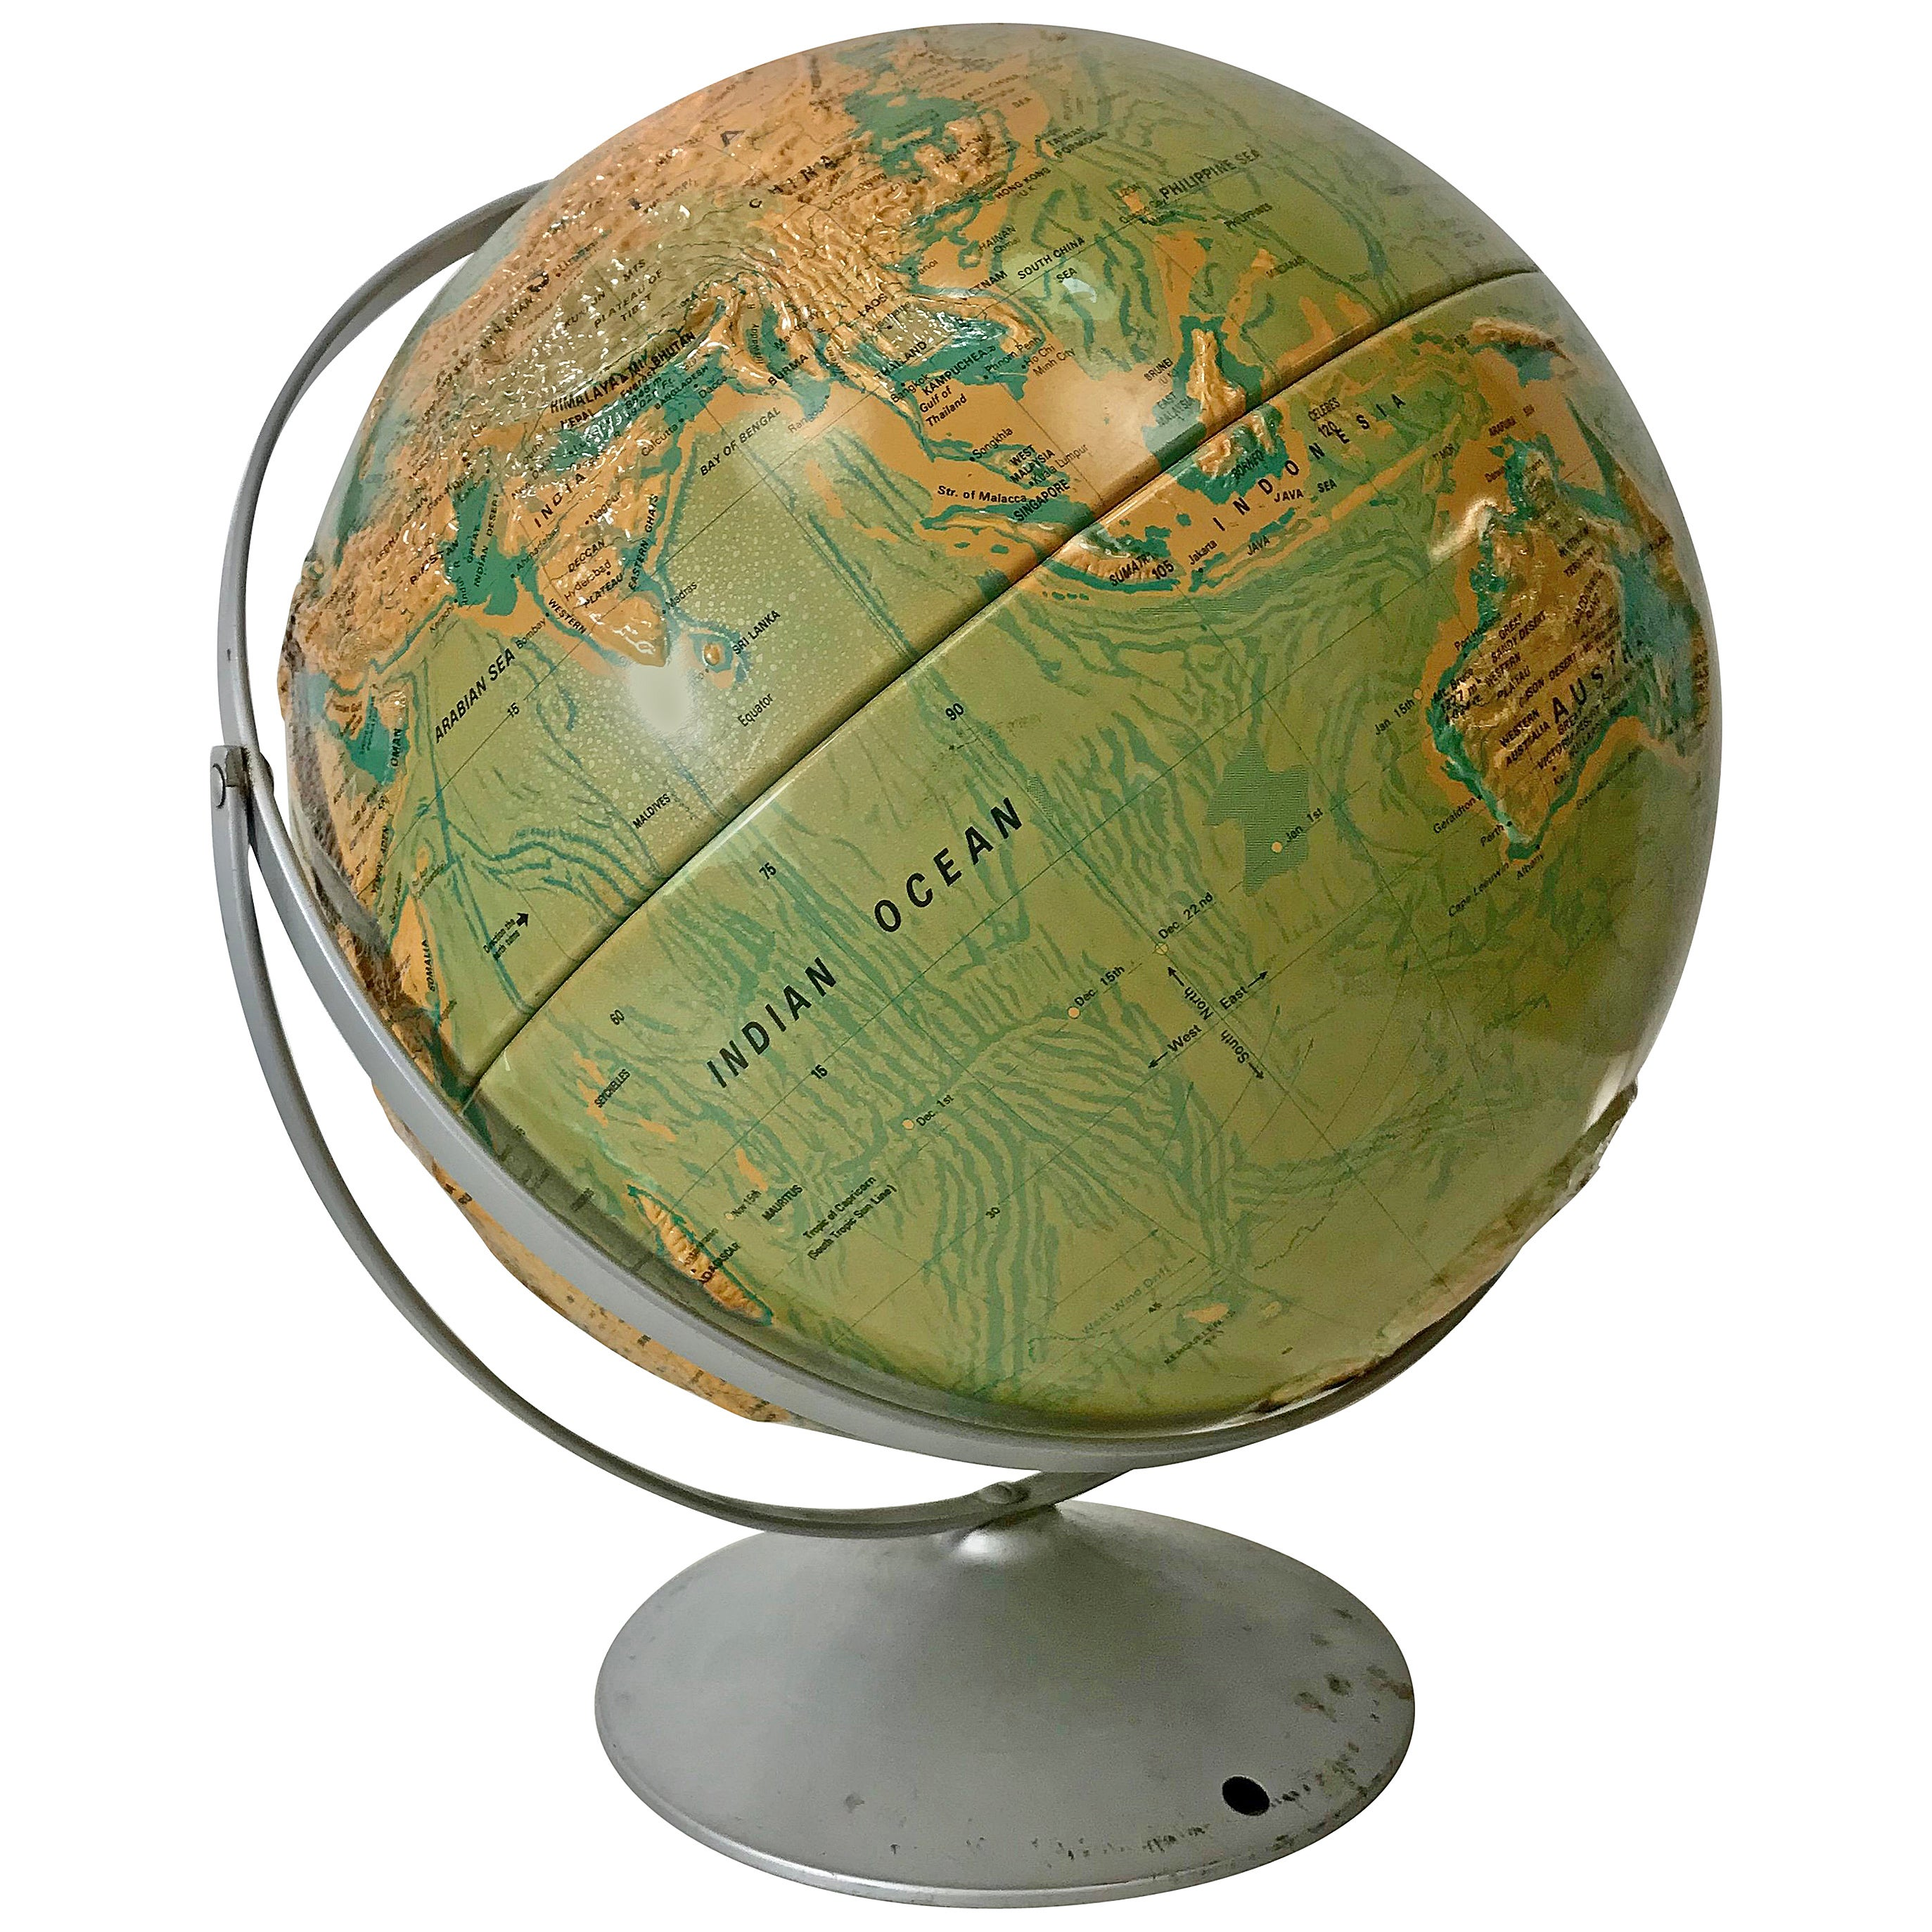 Sculptural Relief World Globe by Nystrom